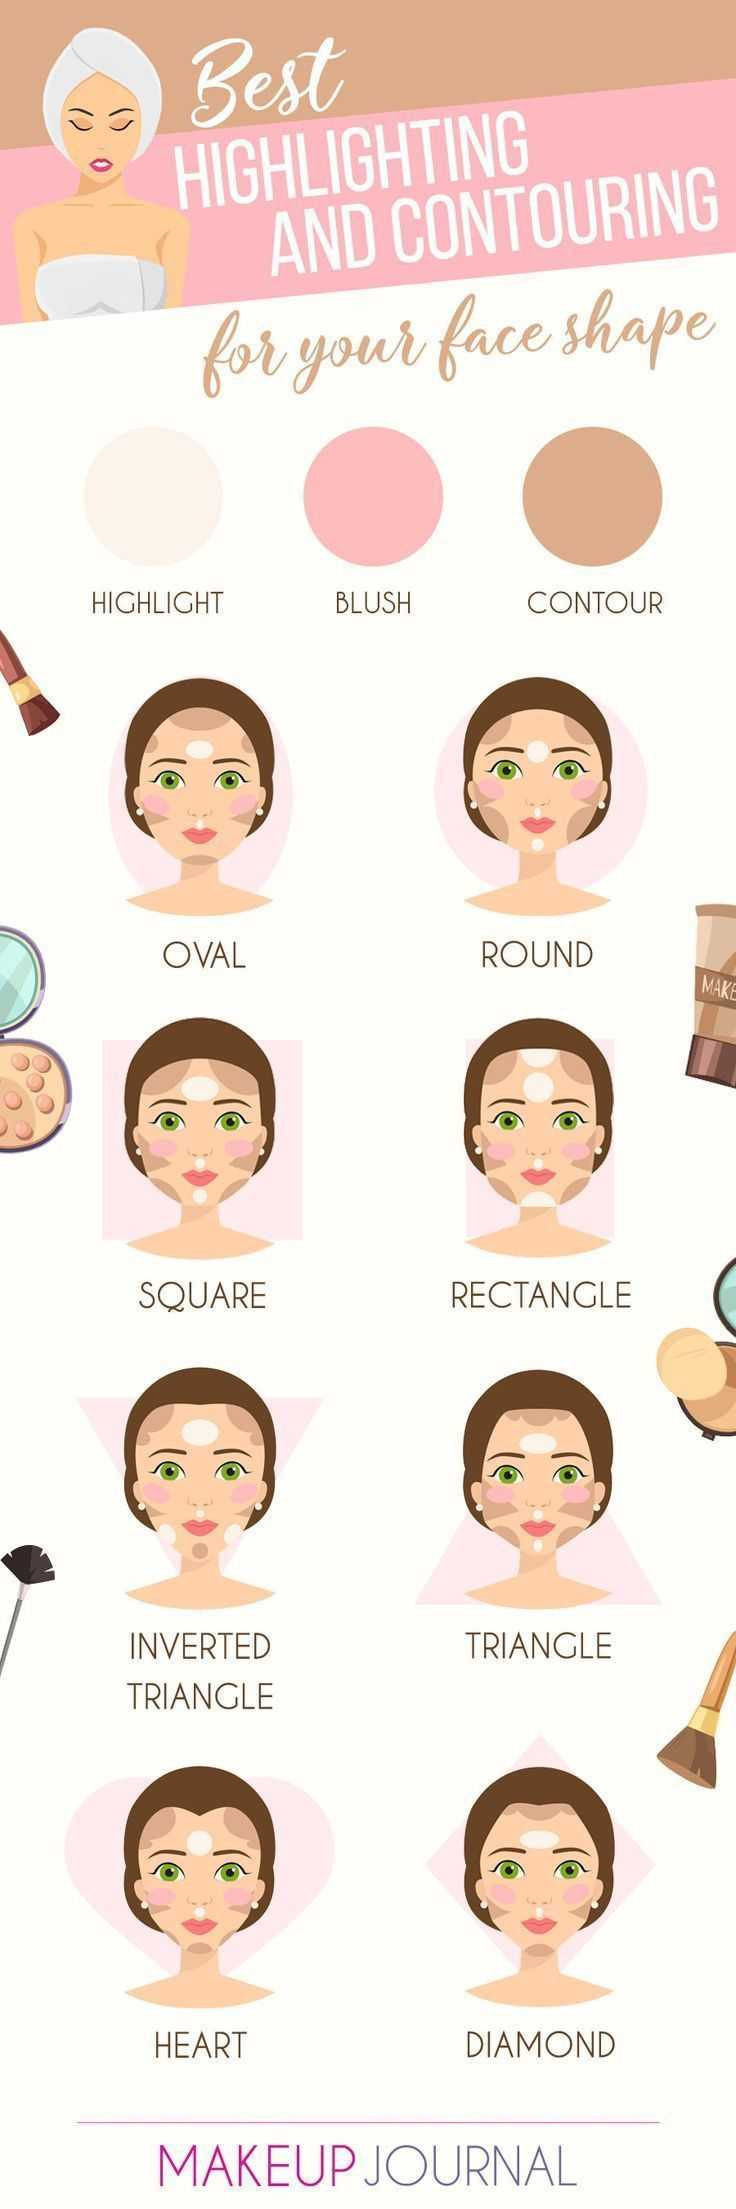 Best Highlighting And Contouring For Your Face Shape